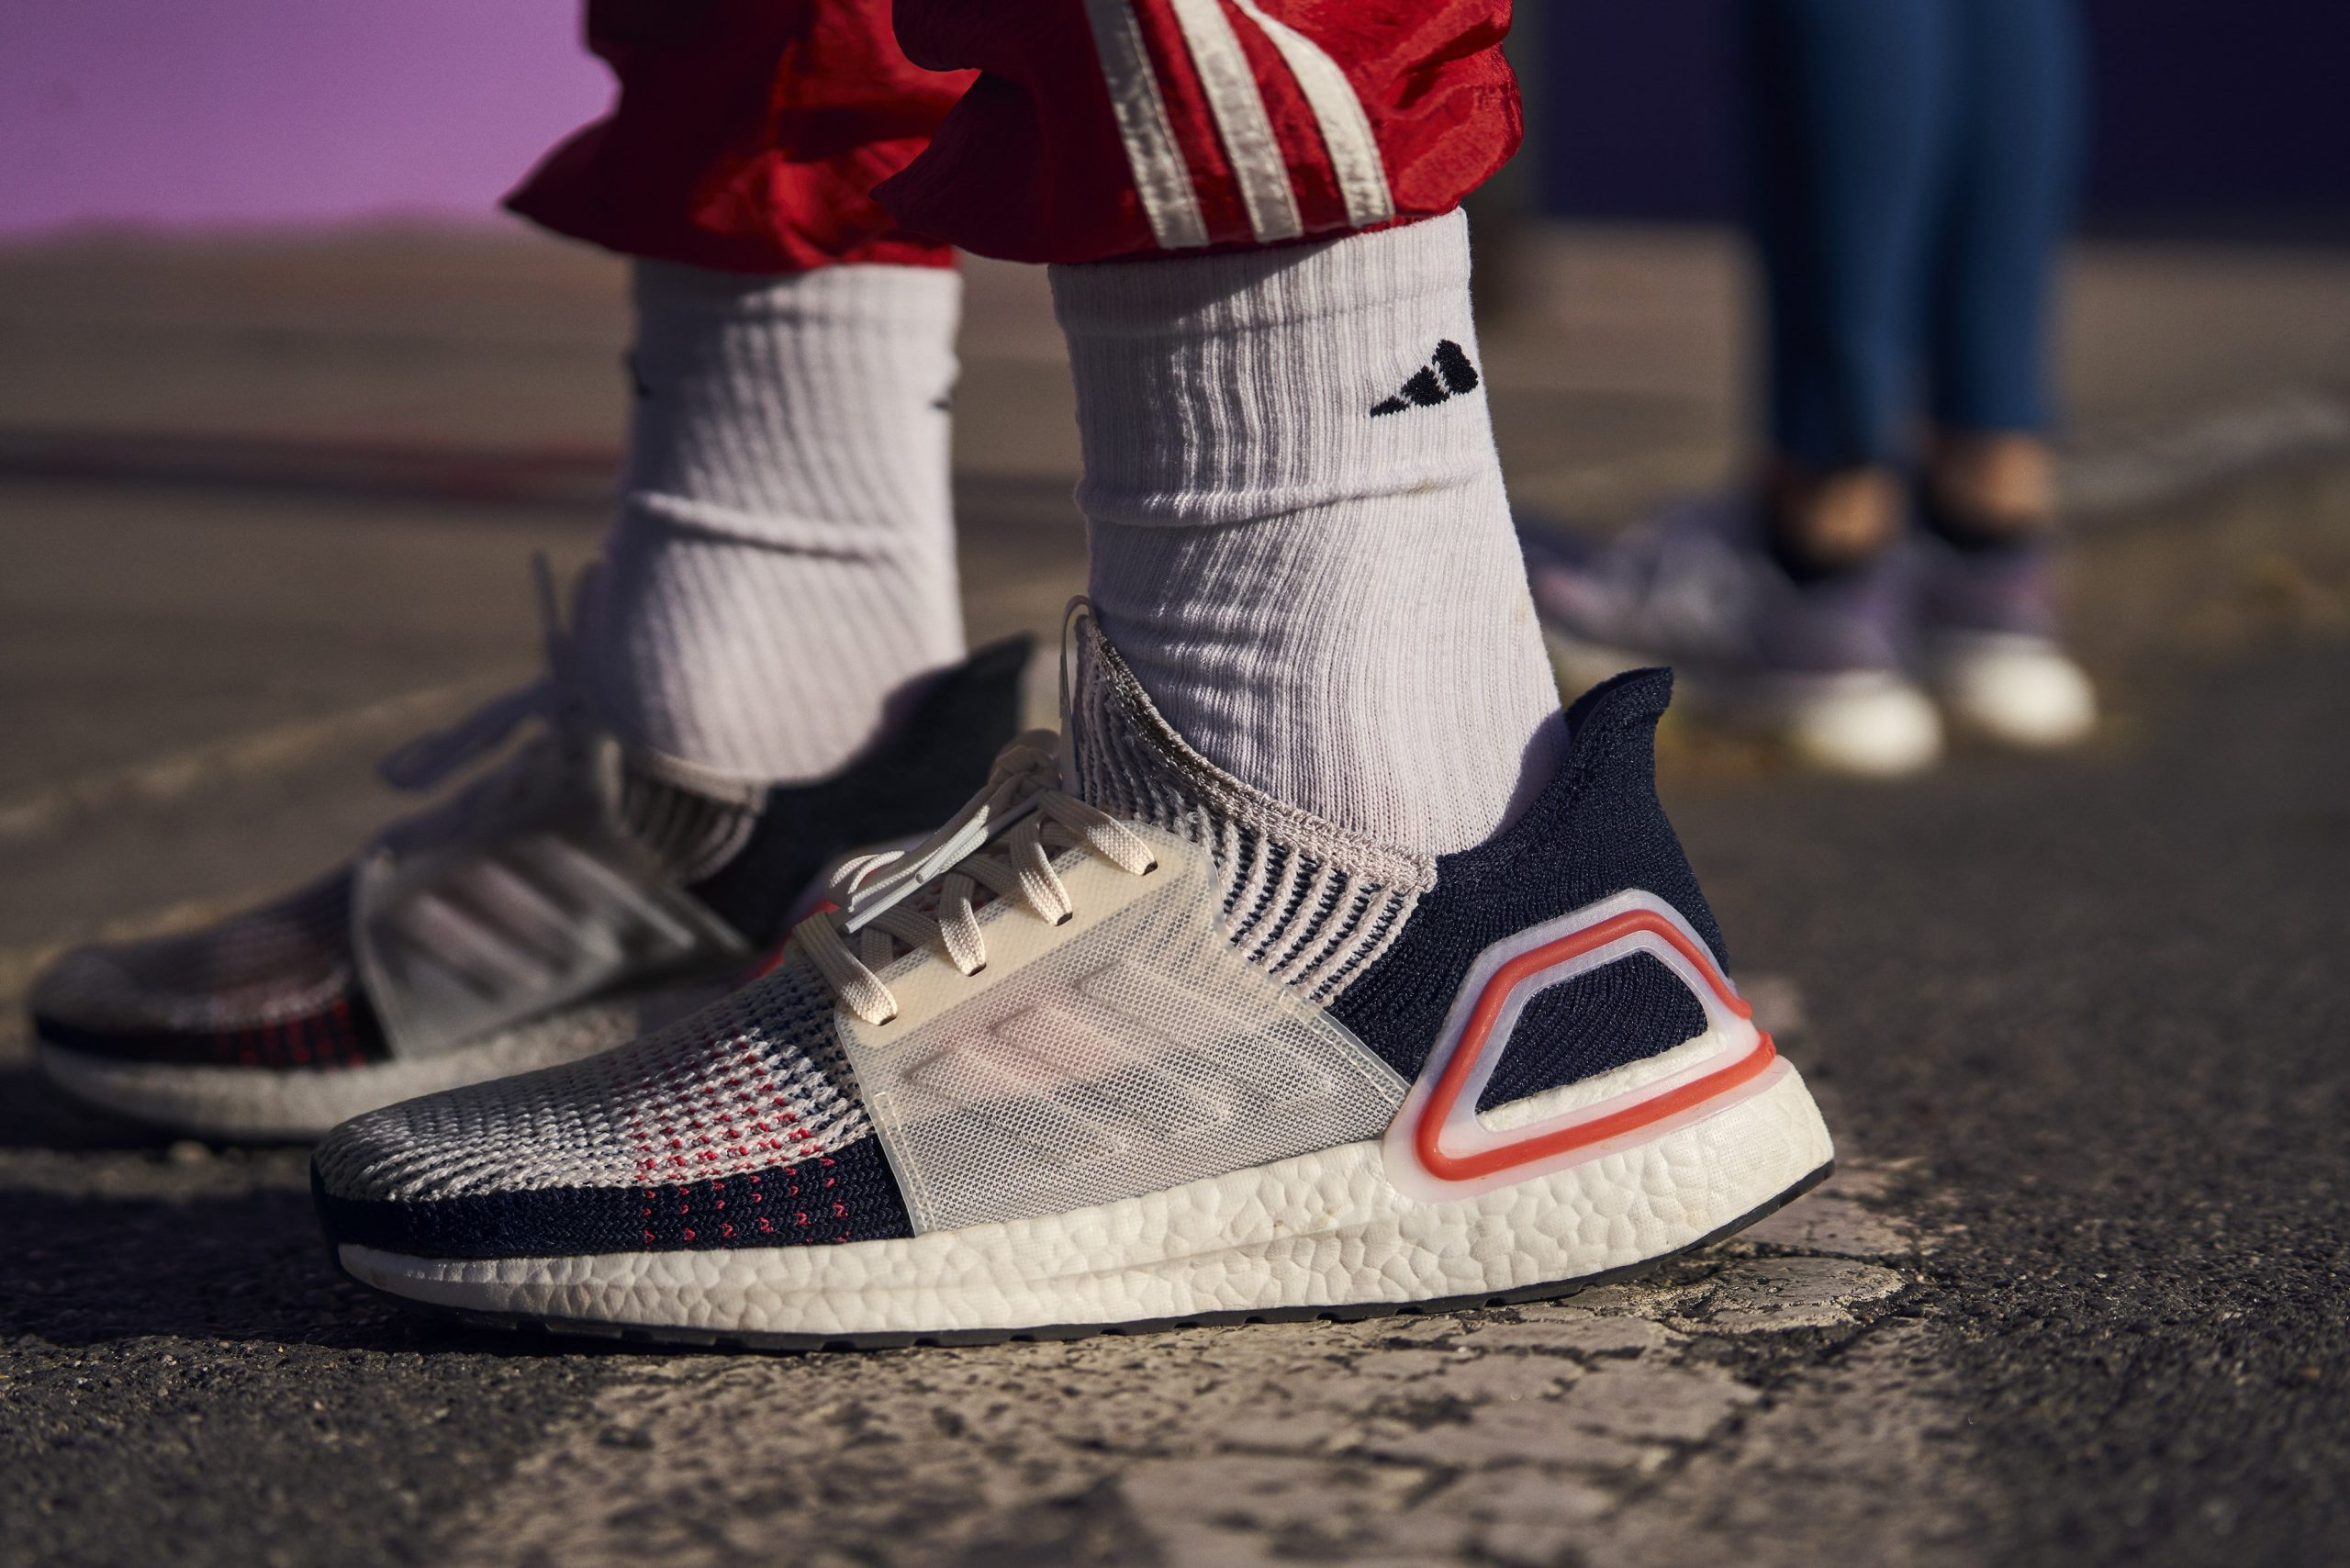 Adidas launches Ultraboost 19 scaled